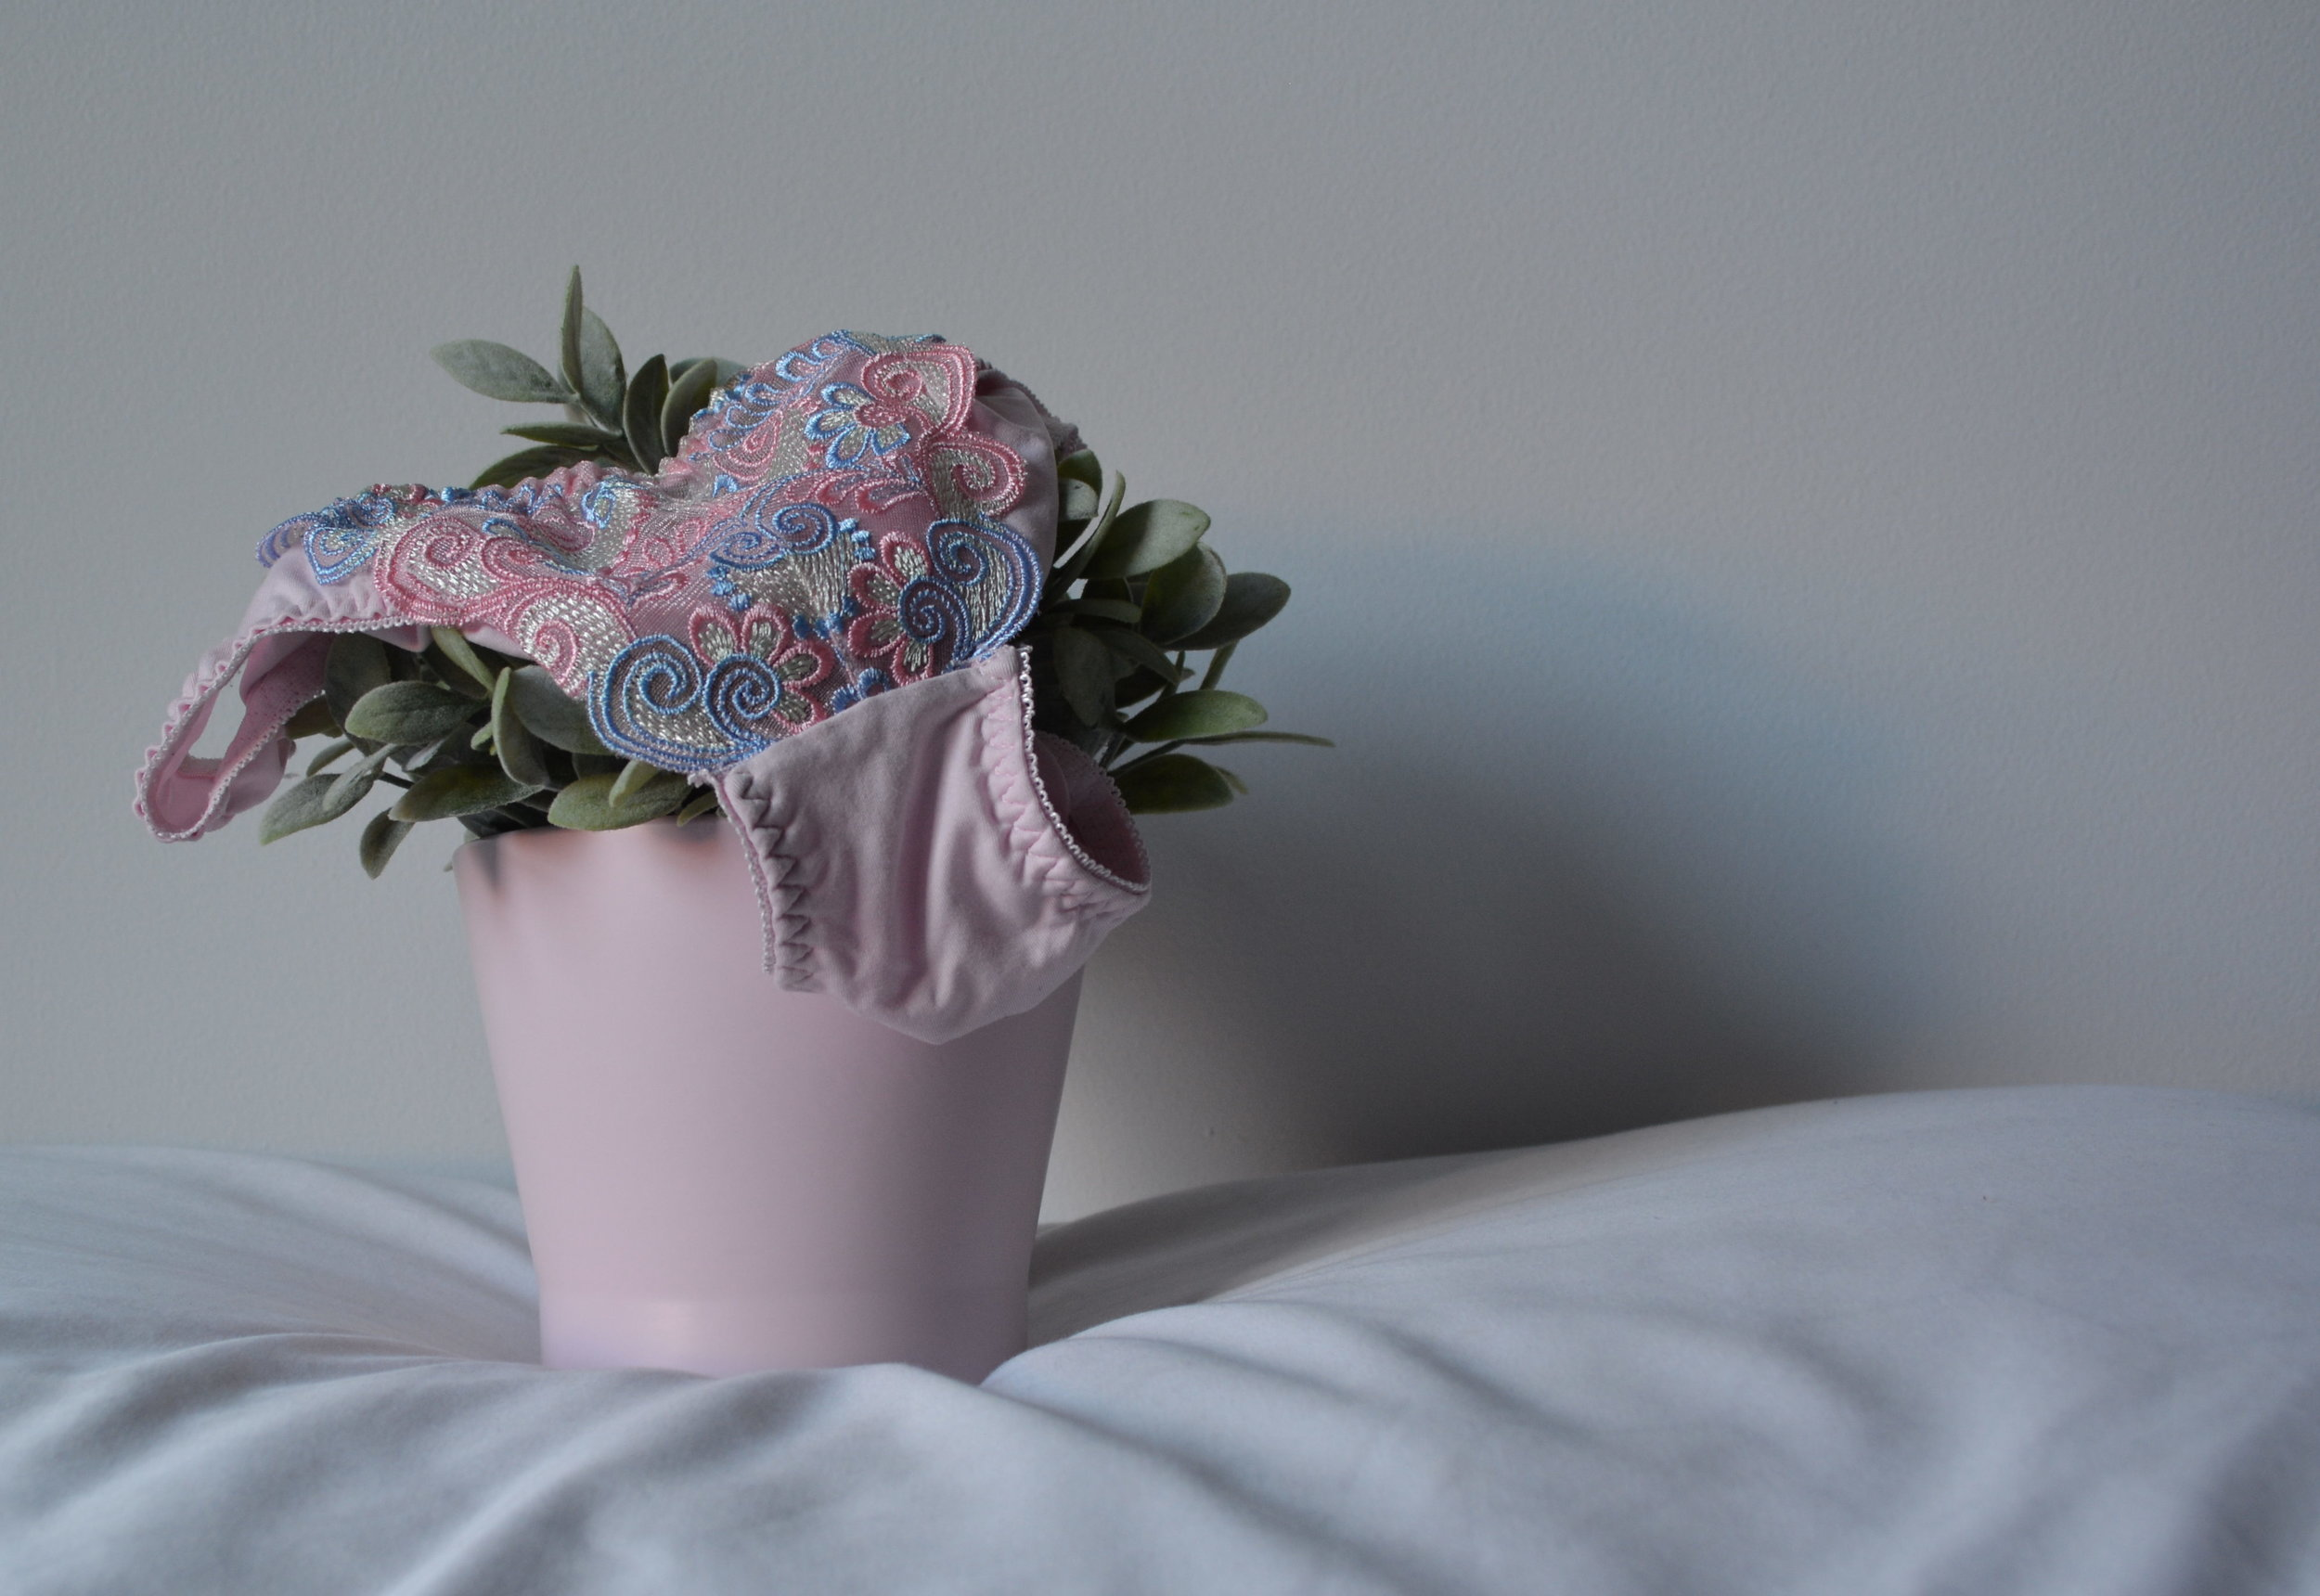 potted-plant-with-pillow-e1478487211219.jpg